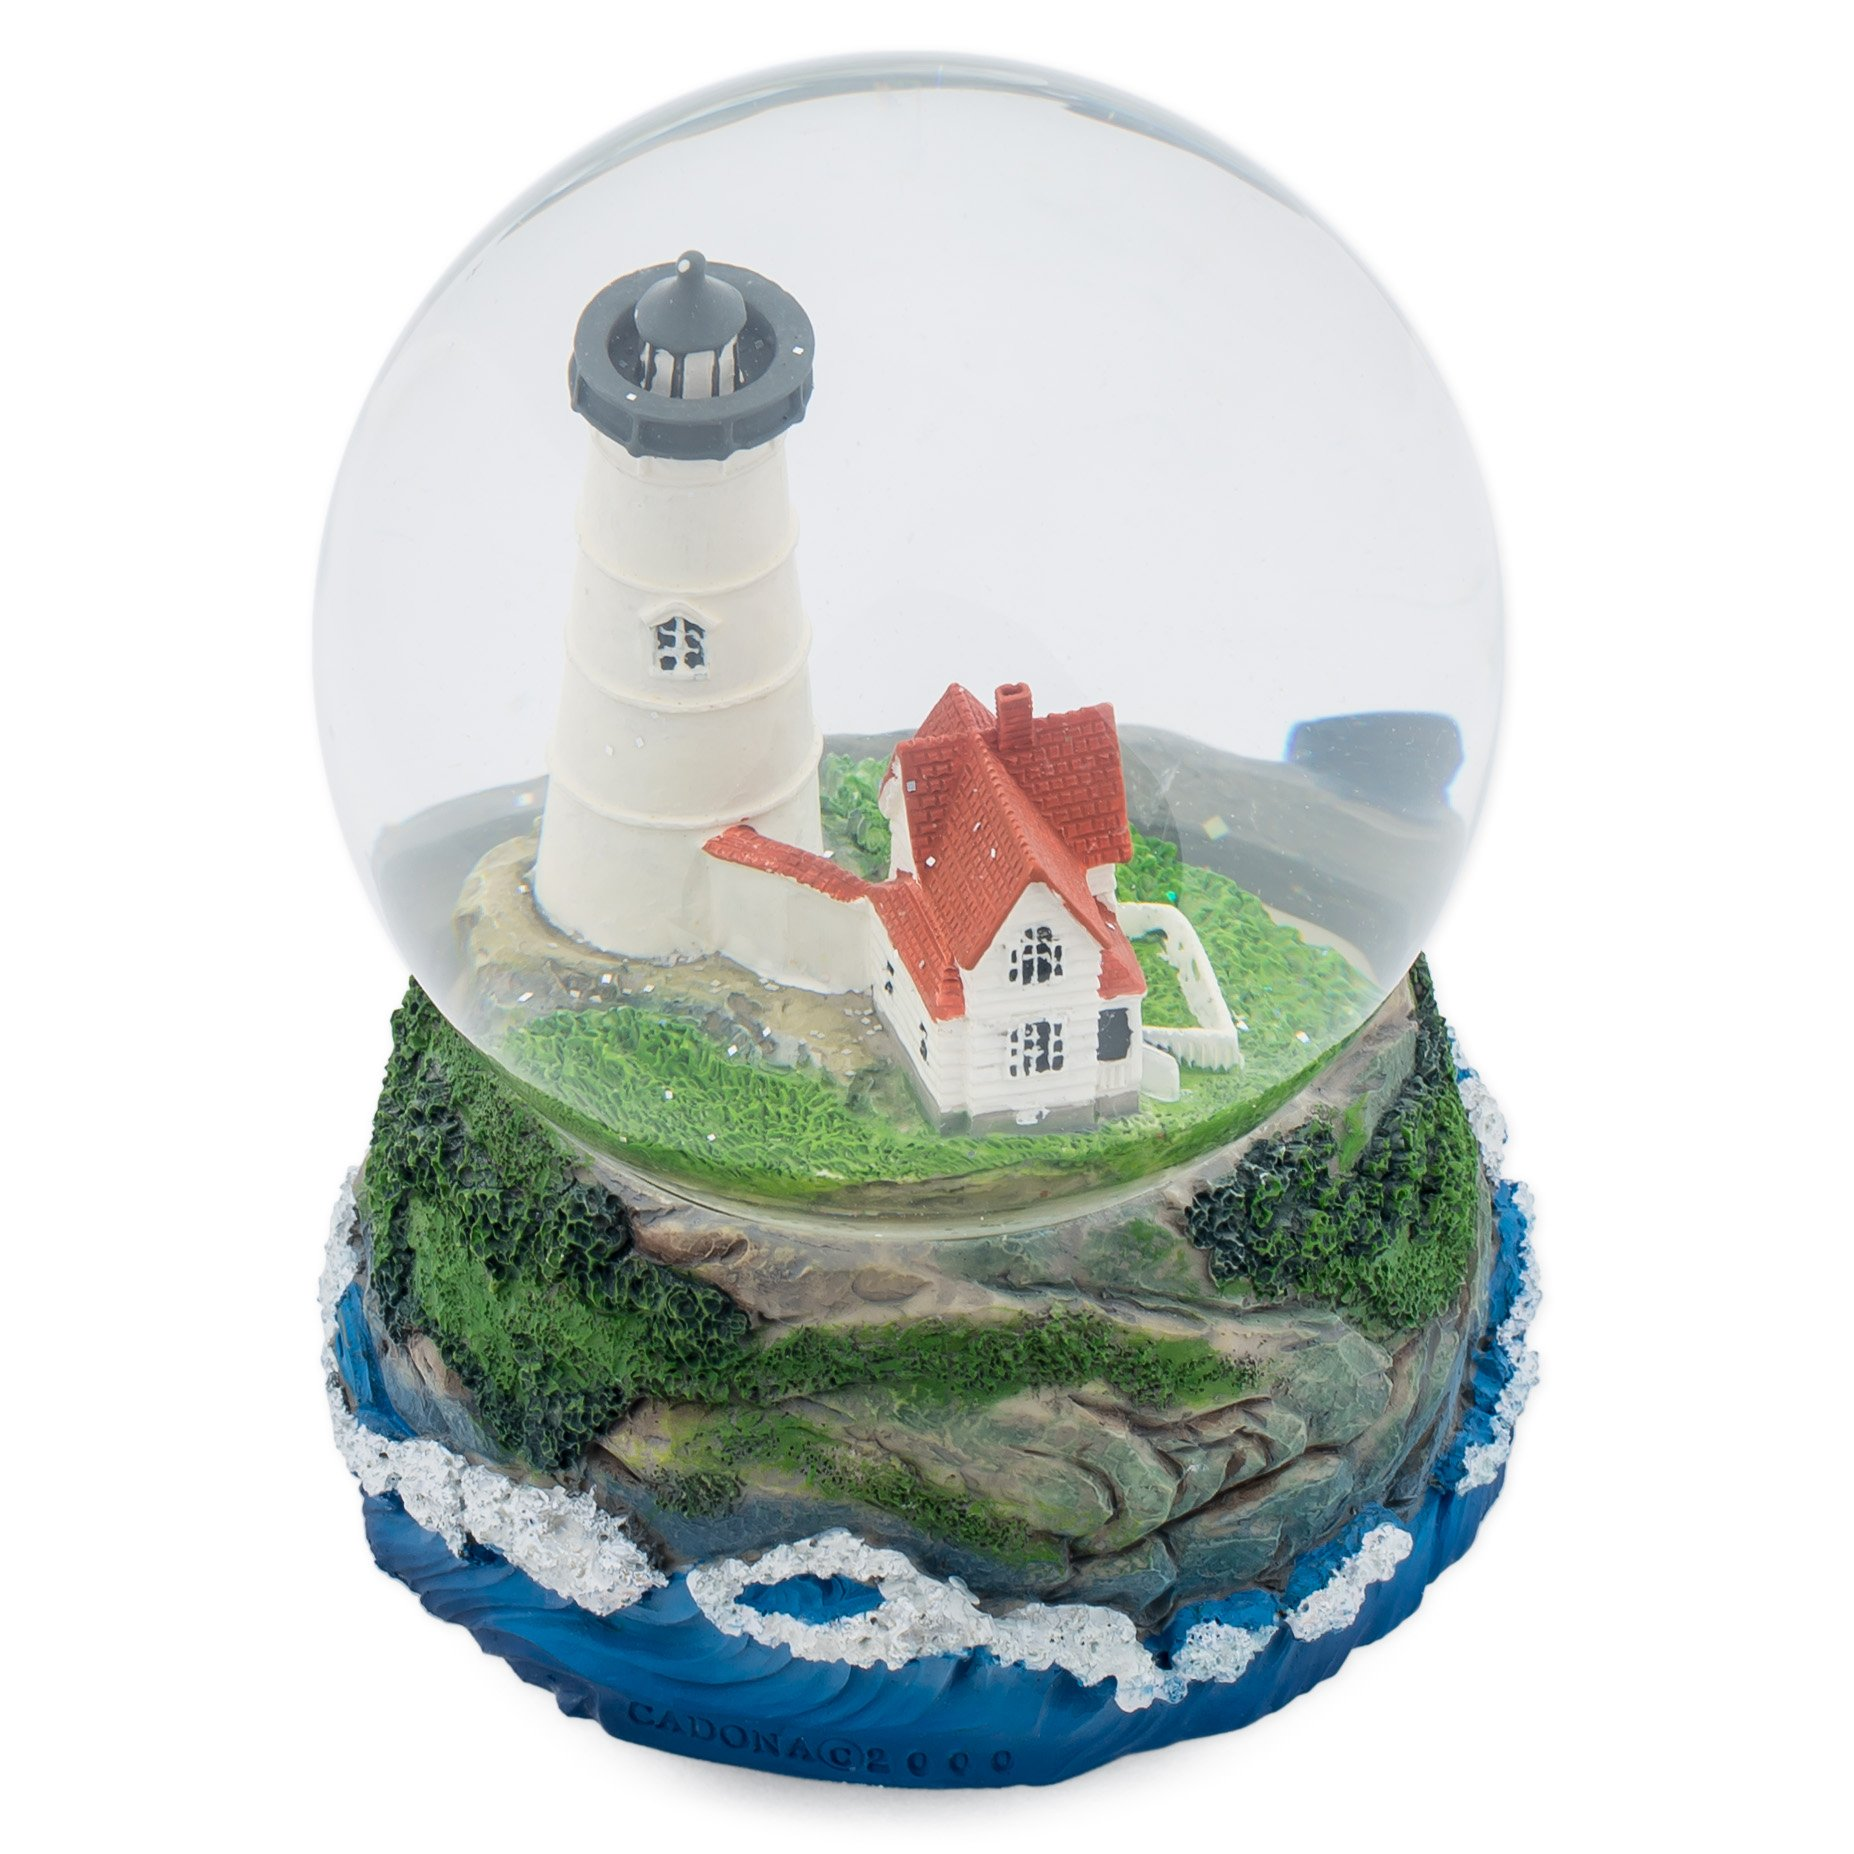 Cape Cod Lighthouse Cottage 100MM Music Water Globe Plays Tune Dock of the Bay by Cadona International, Inc (Image #3)